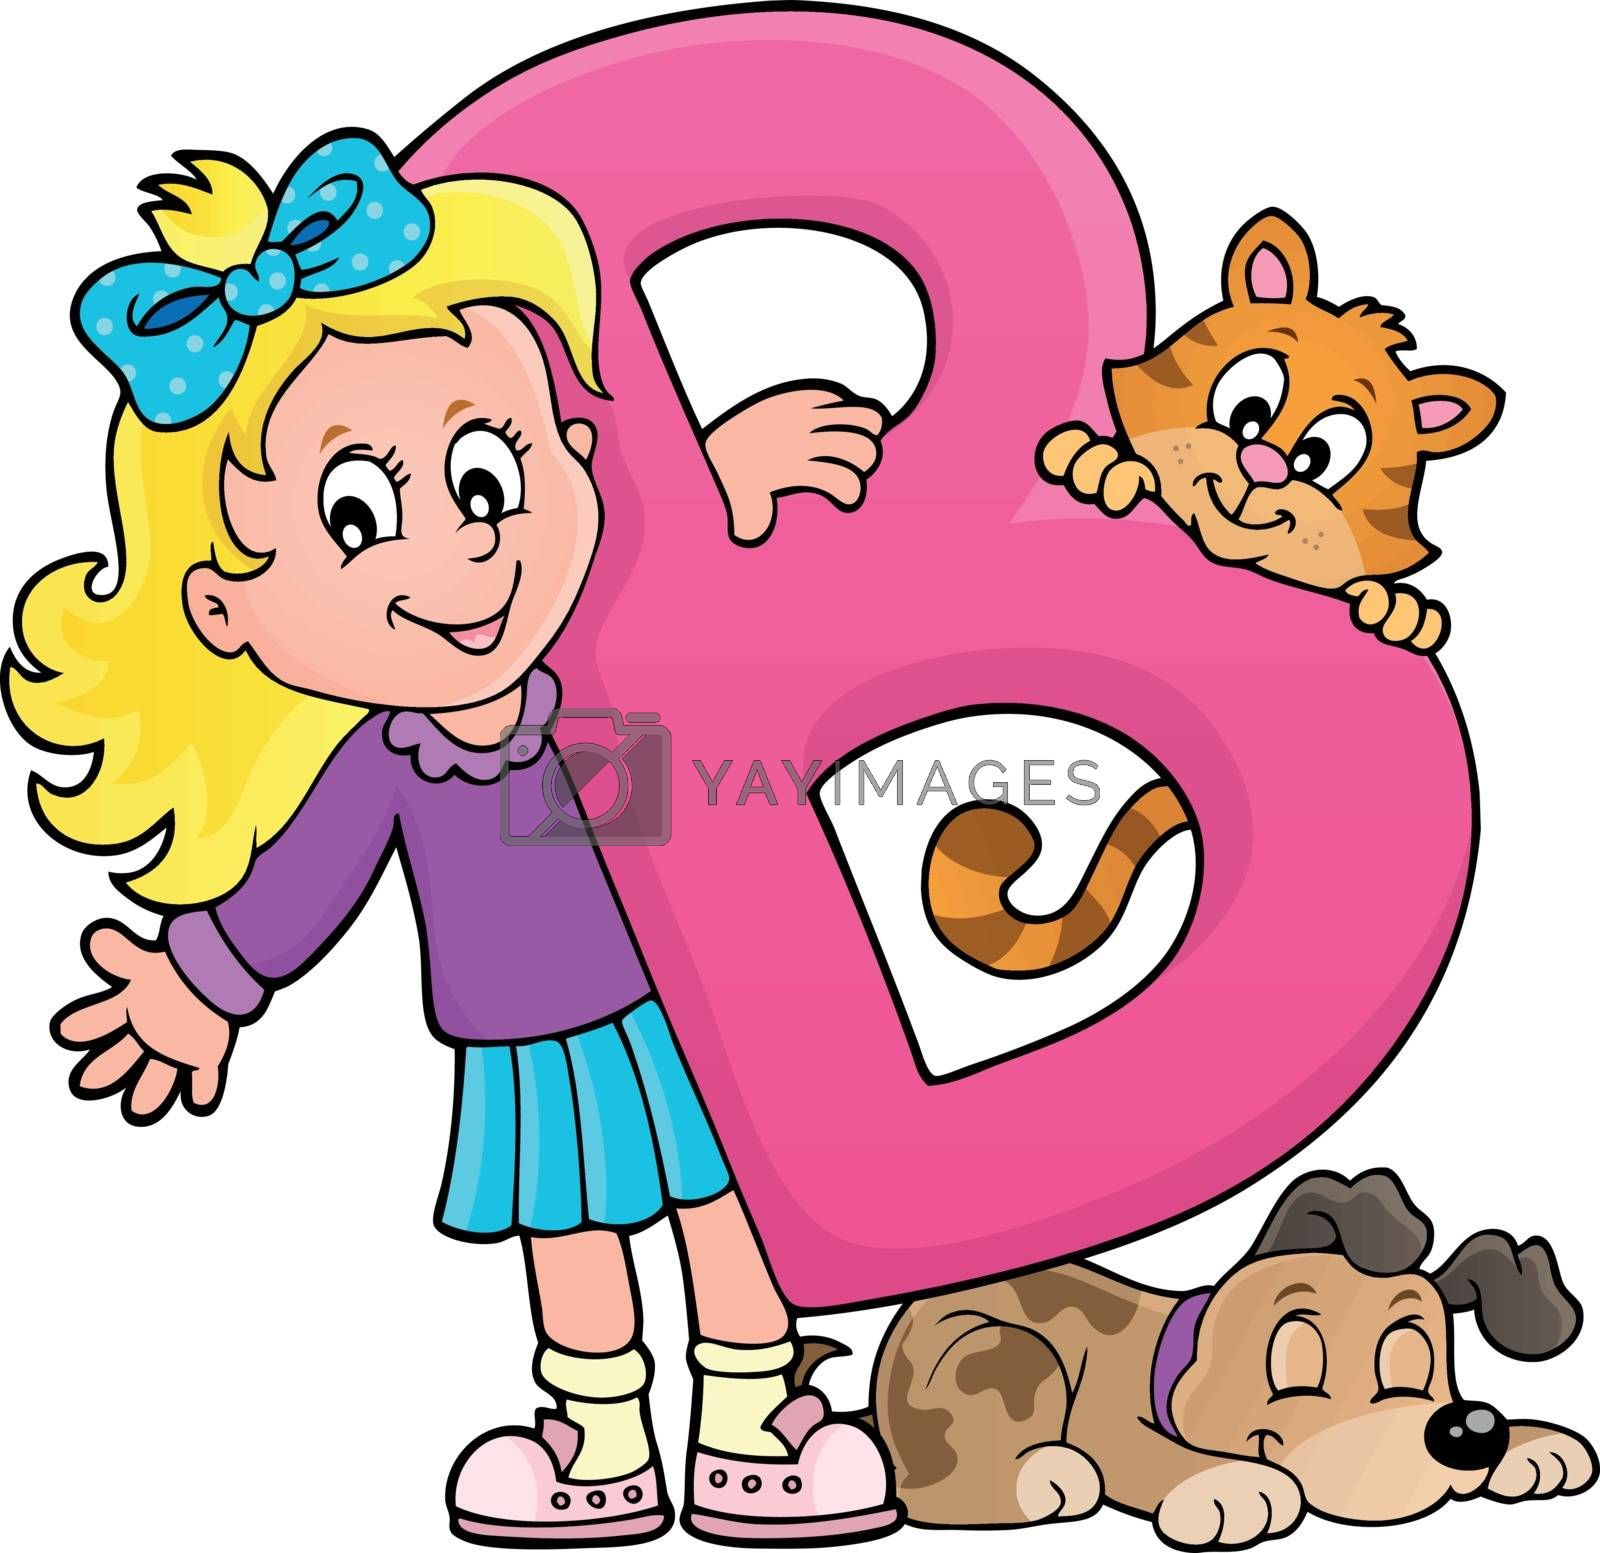 Girl and pets with letter B - eps10 vector illustration.